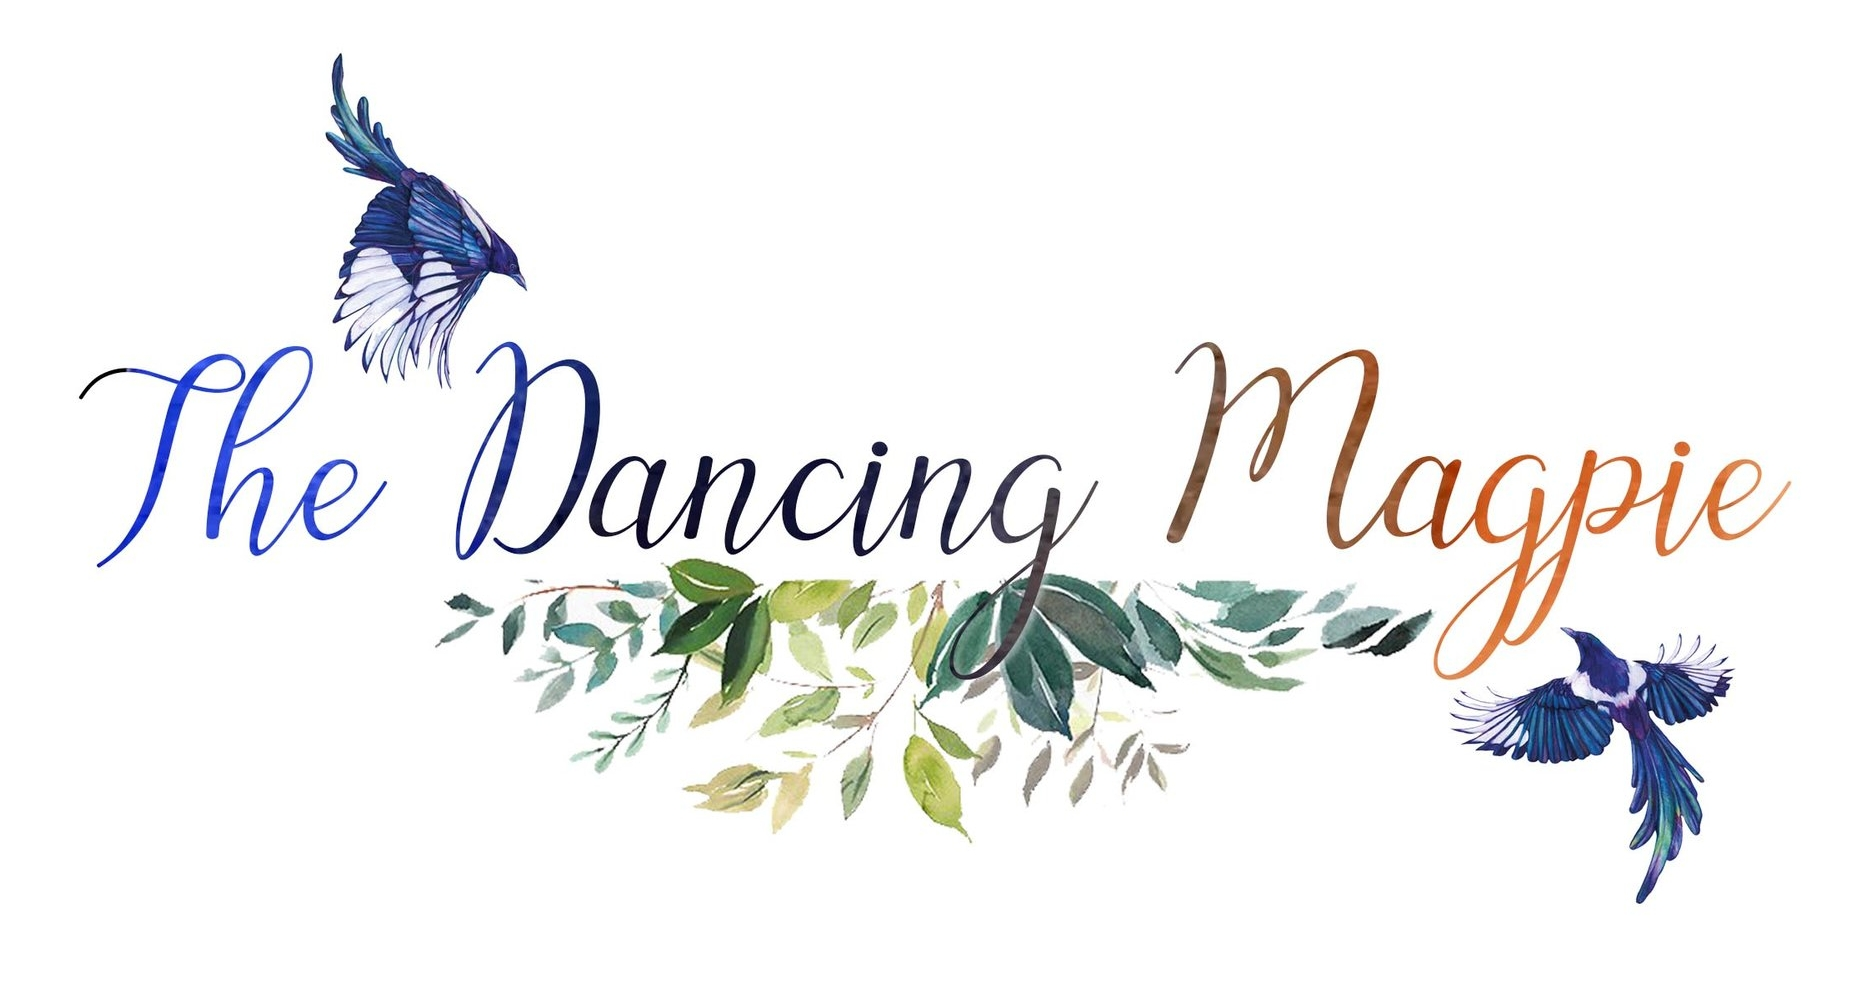 The Dancing Magpie